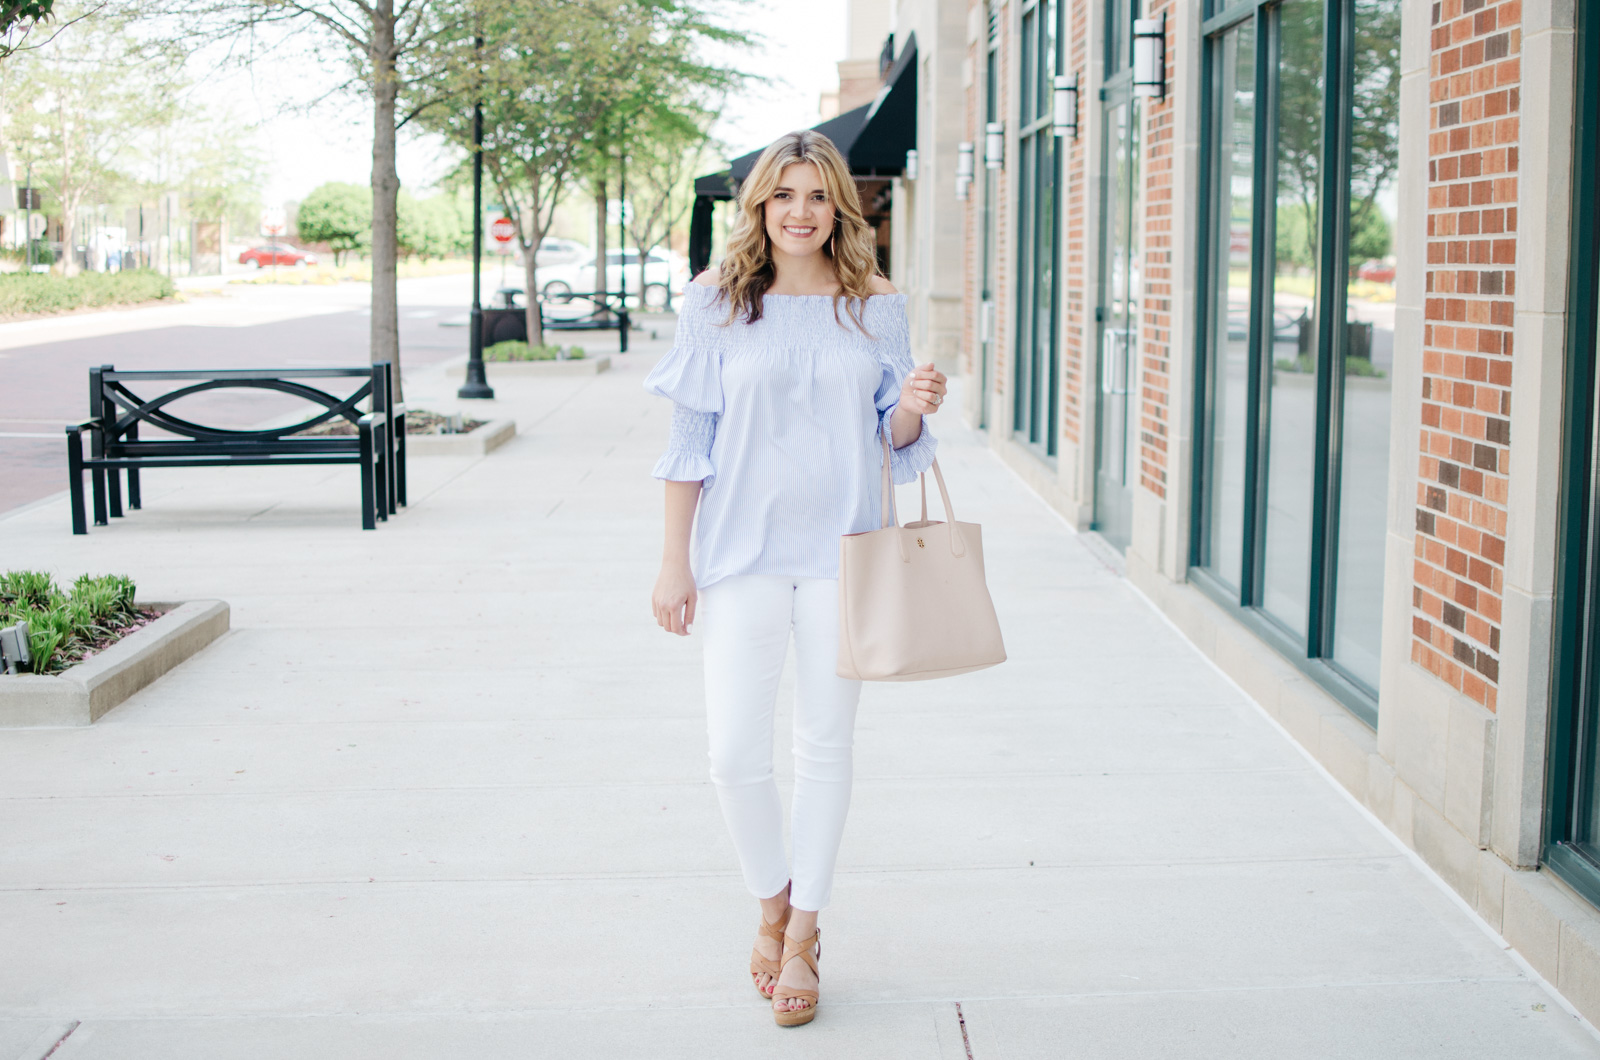 spring outfit idea - how wear off shoulder tops | Want more Spring outfit inspiration? Head to bylaurenm.com!